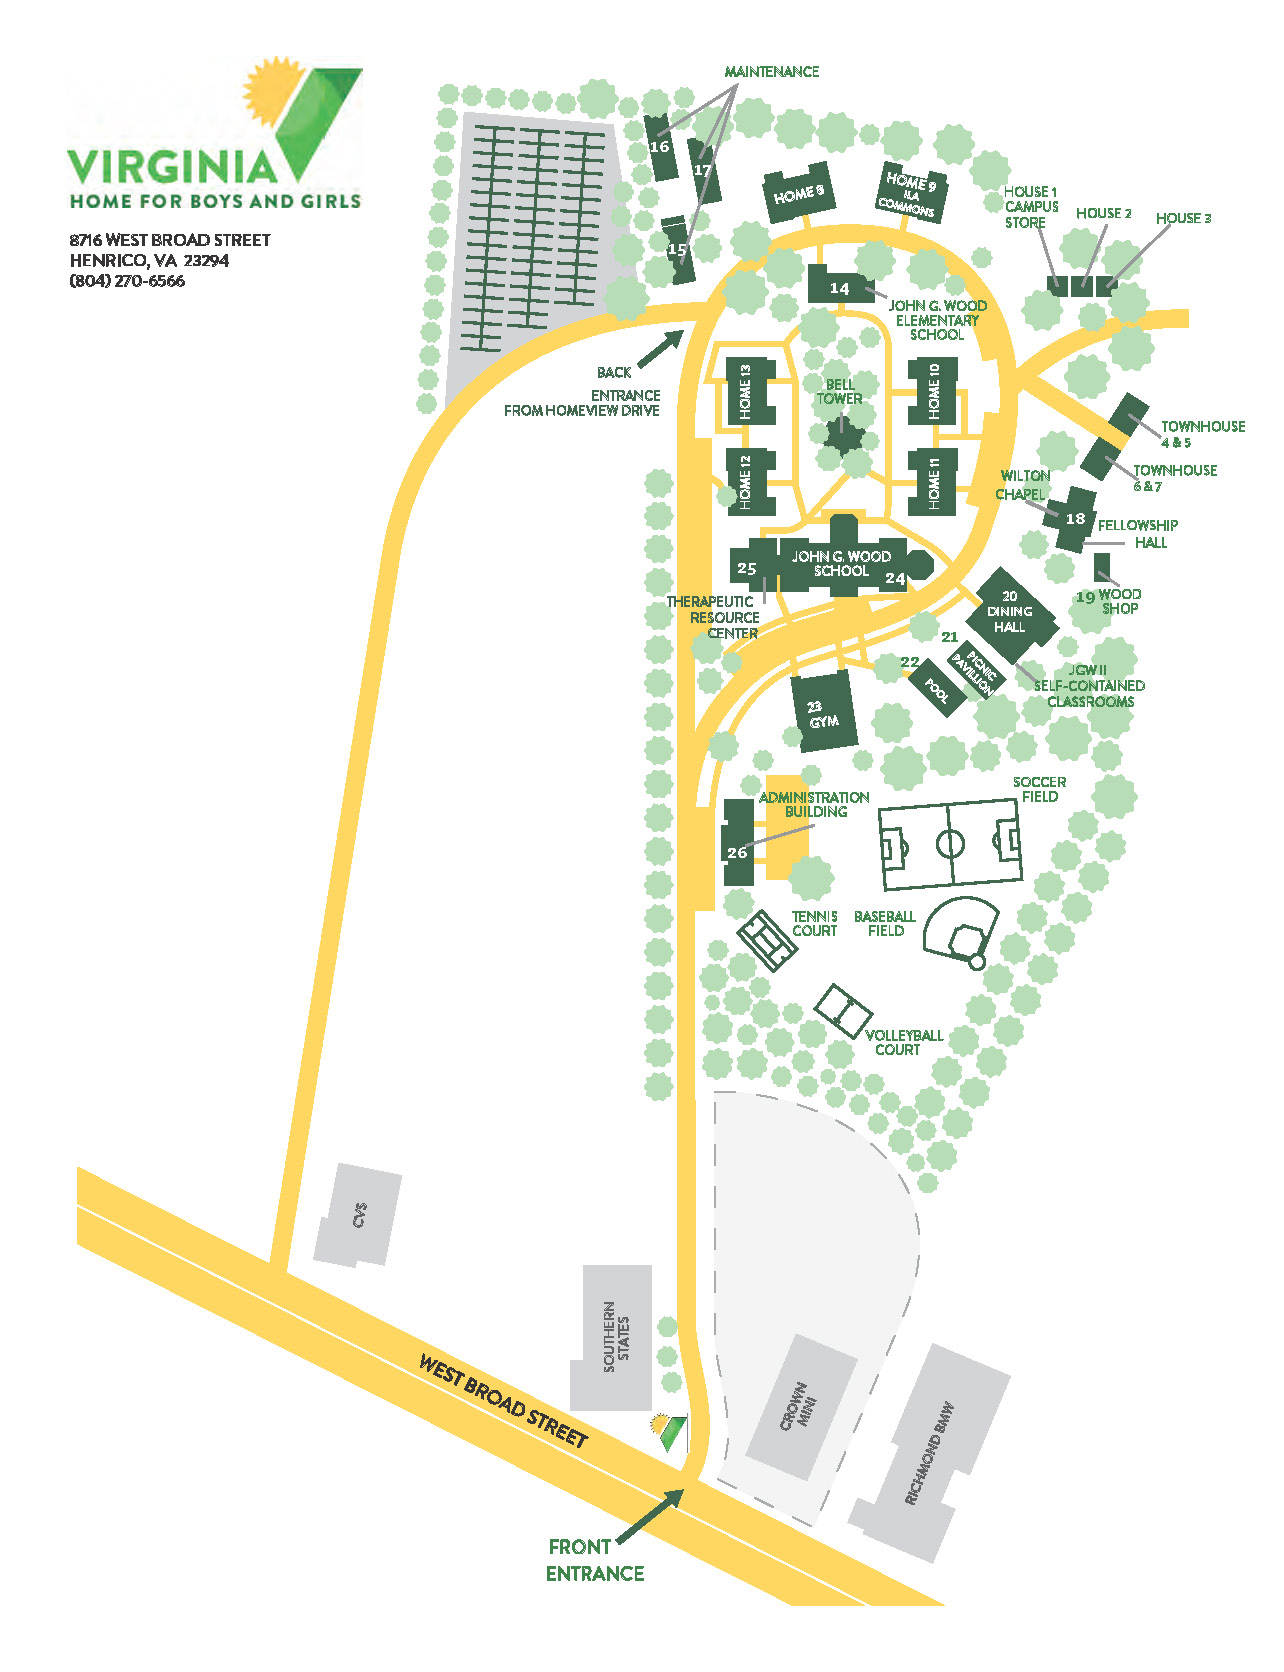 Norfolk State Campus Map.Contact Directions Tour Virginia Home For Boys Girls